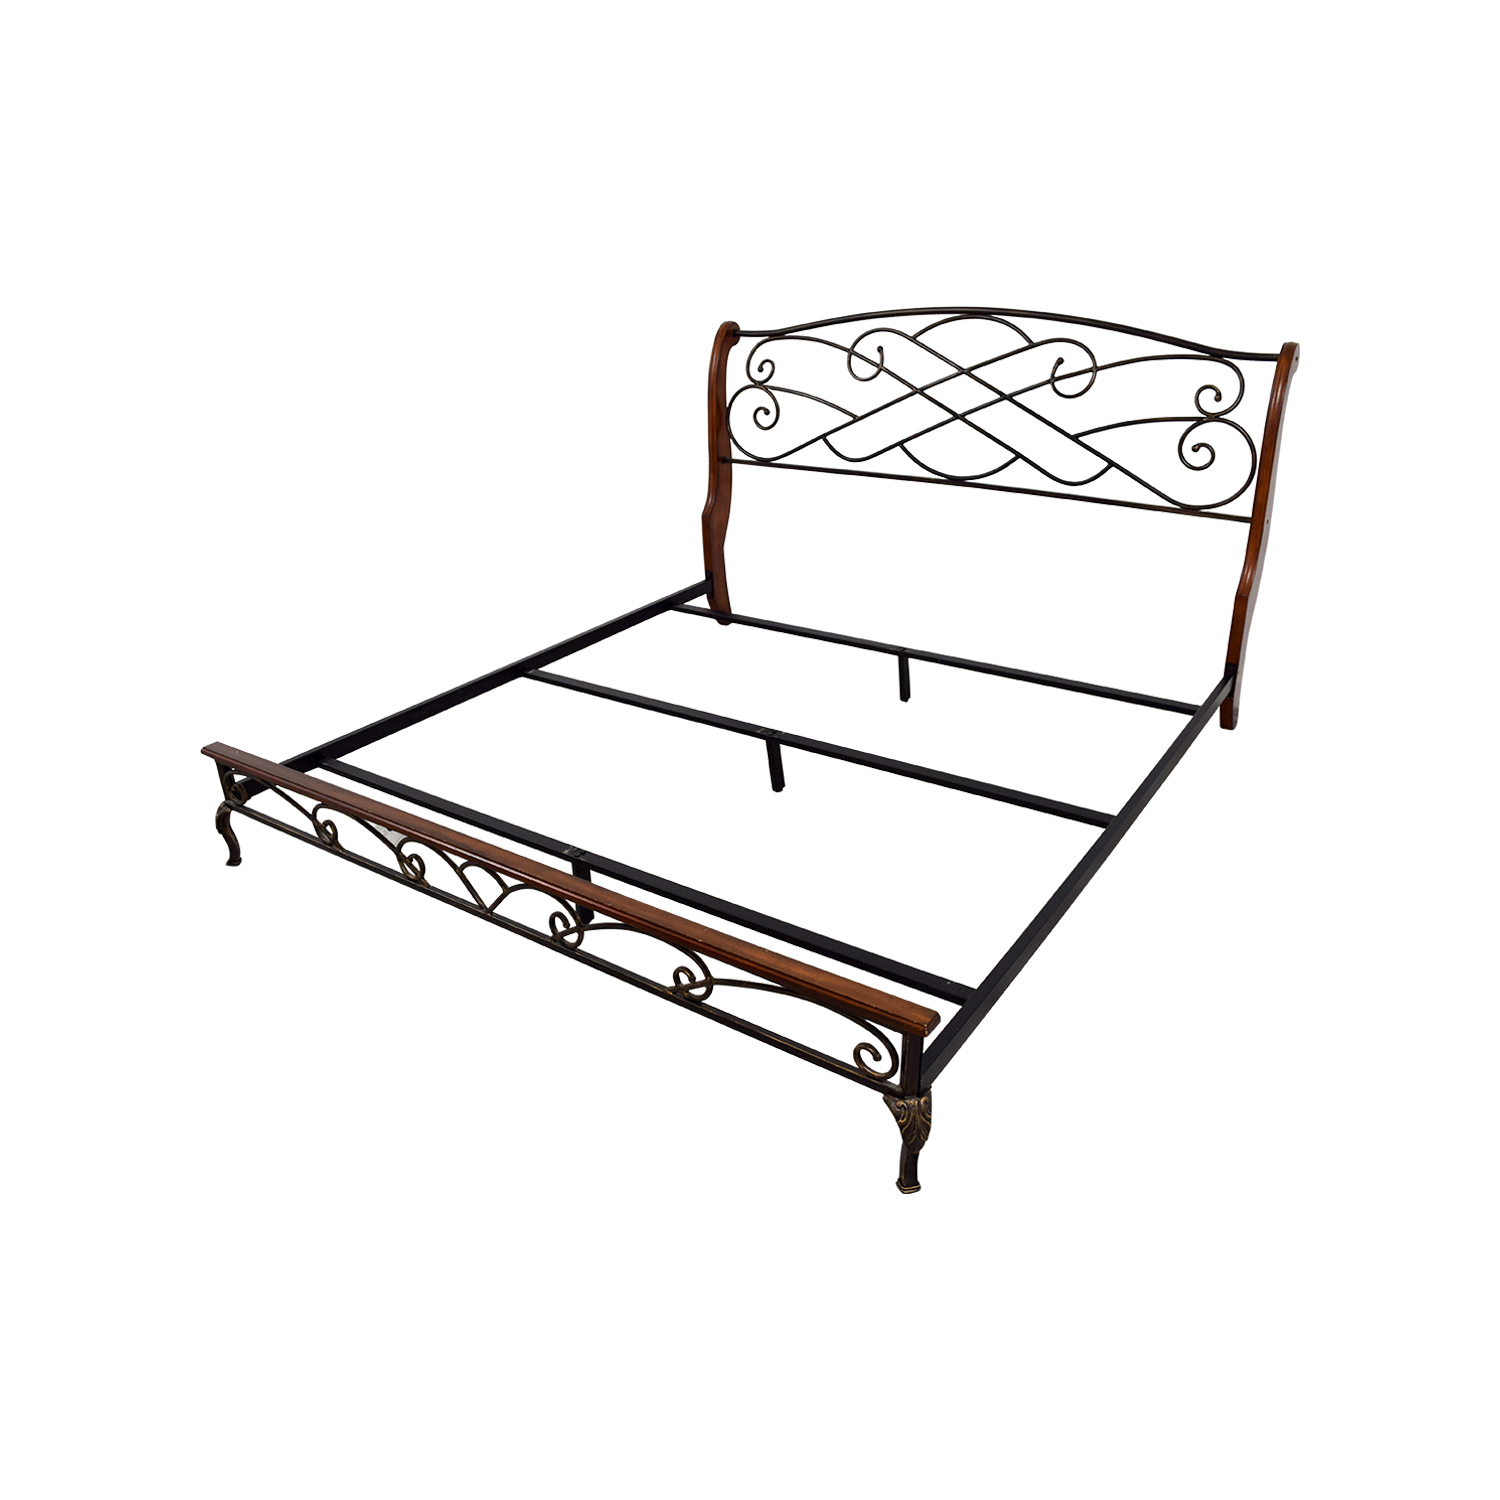 90 Off King Wood And Metal Bed Frame Beds